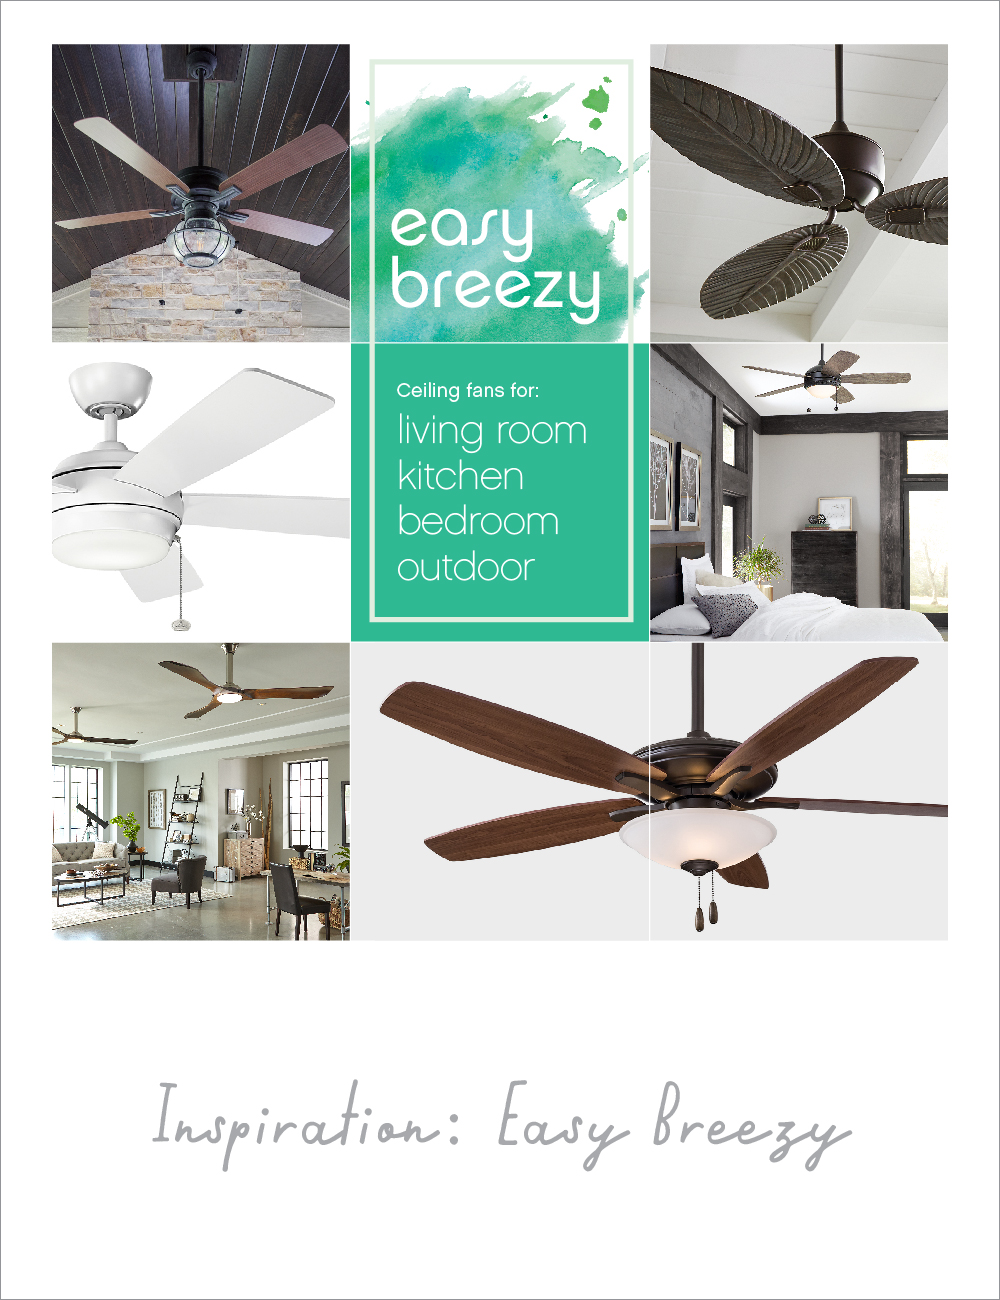 Inspiration board featuring ceiling fans for every room